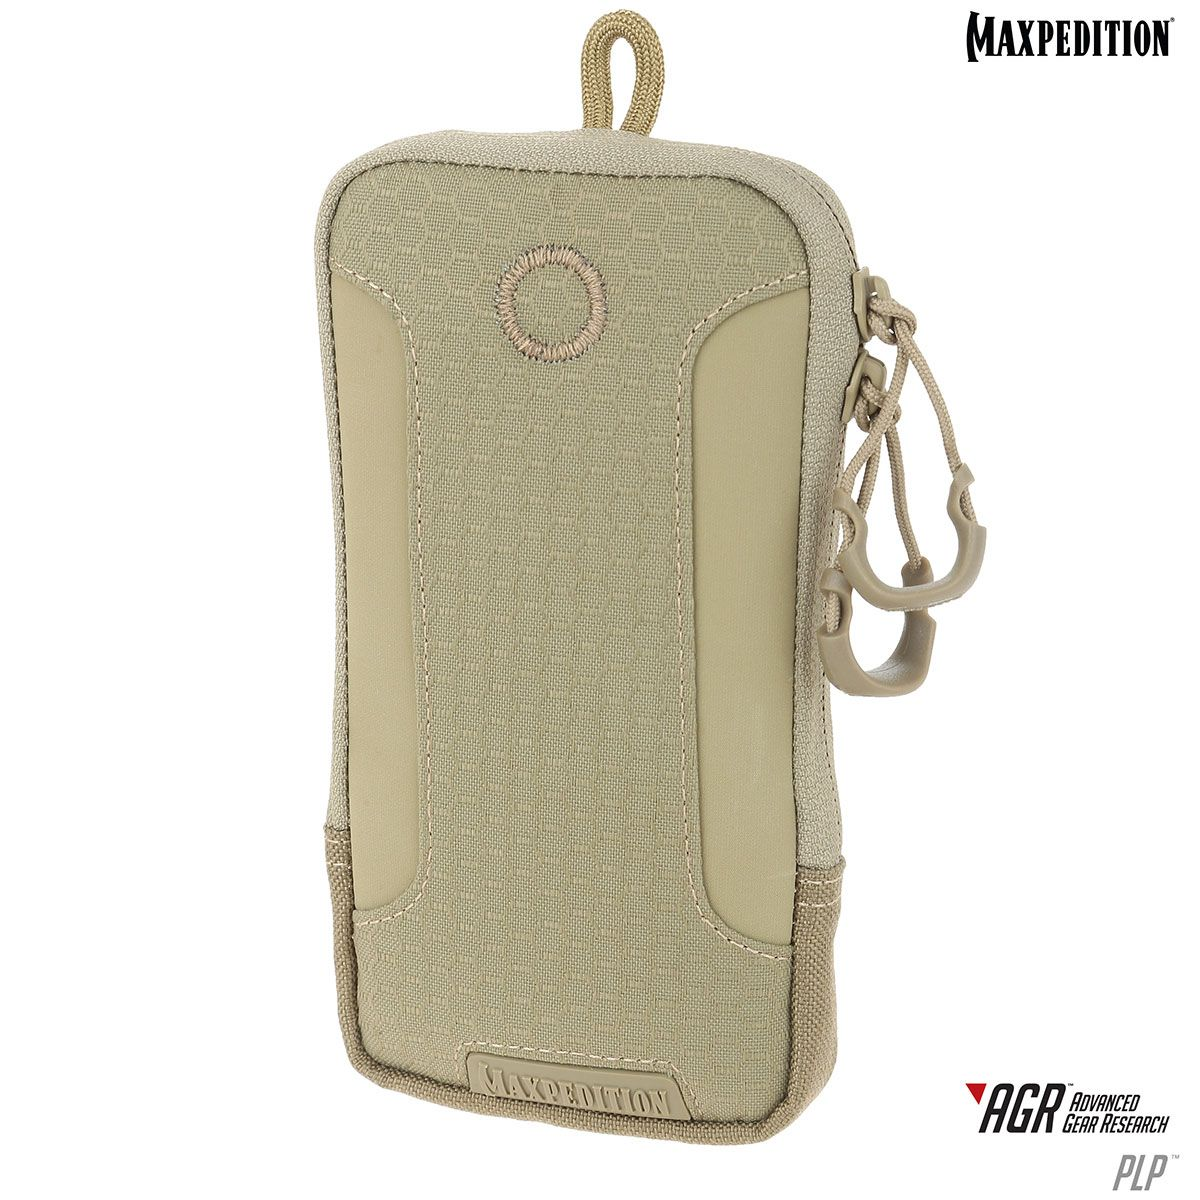 Maxpedition PLPTAN AGR Advanced Gear Research PLP iPhone 6s Plus Pouch, Tan